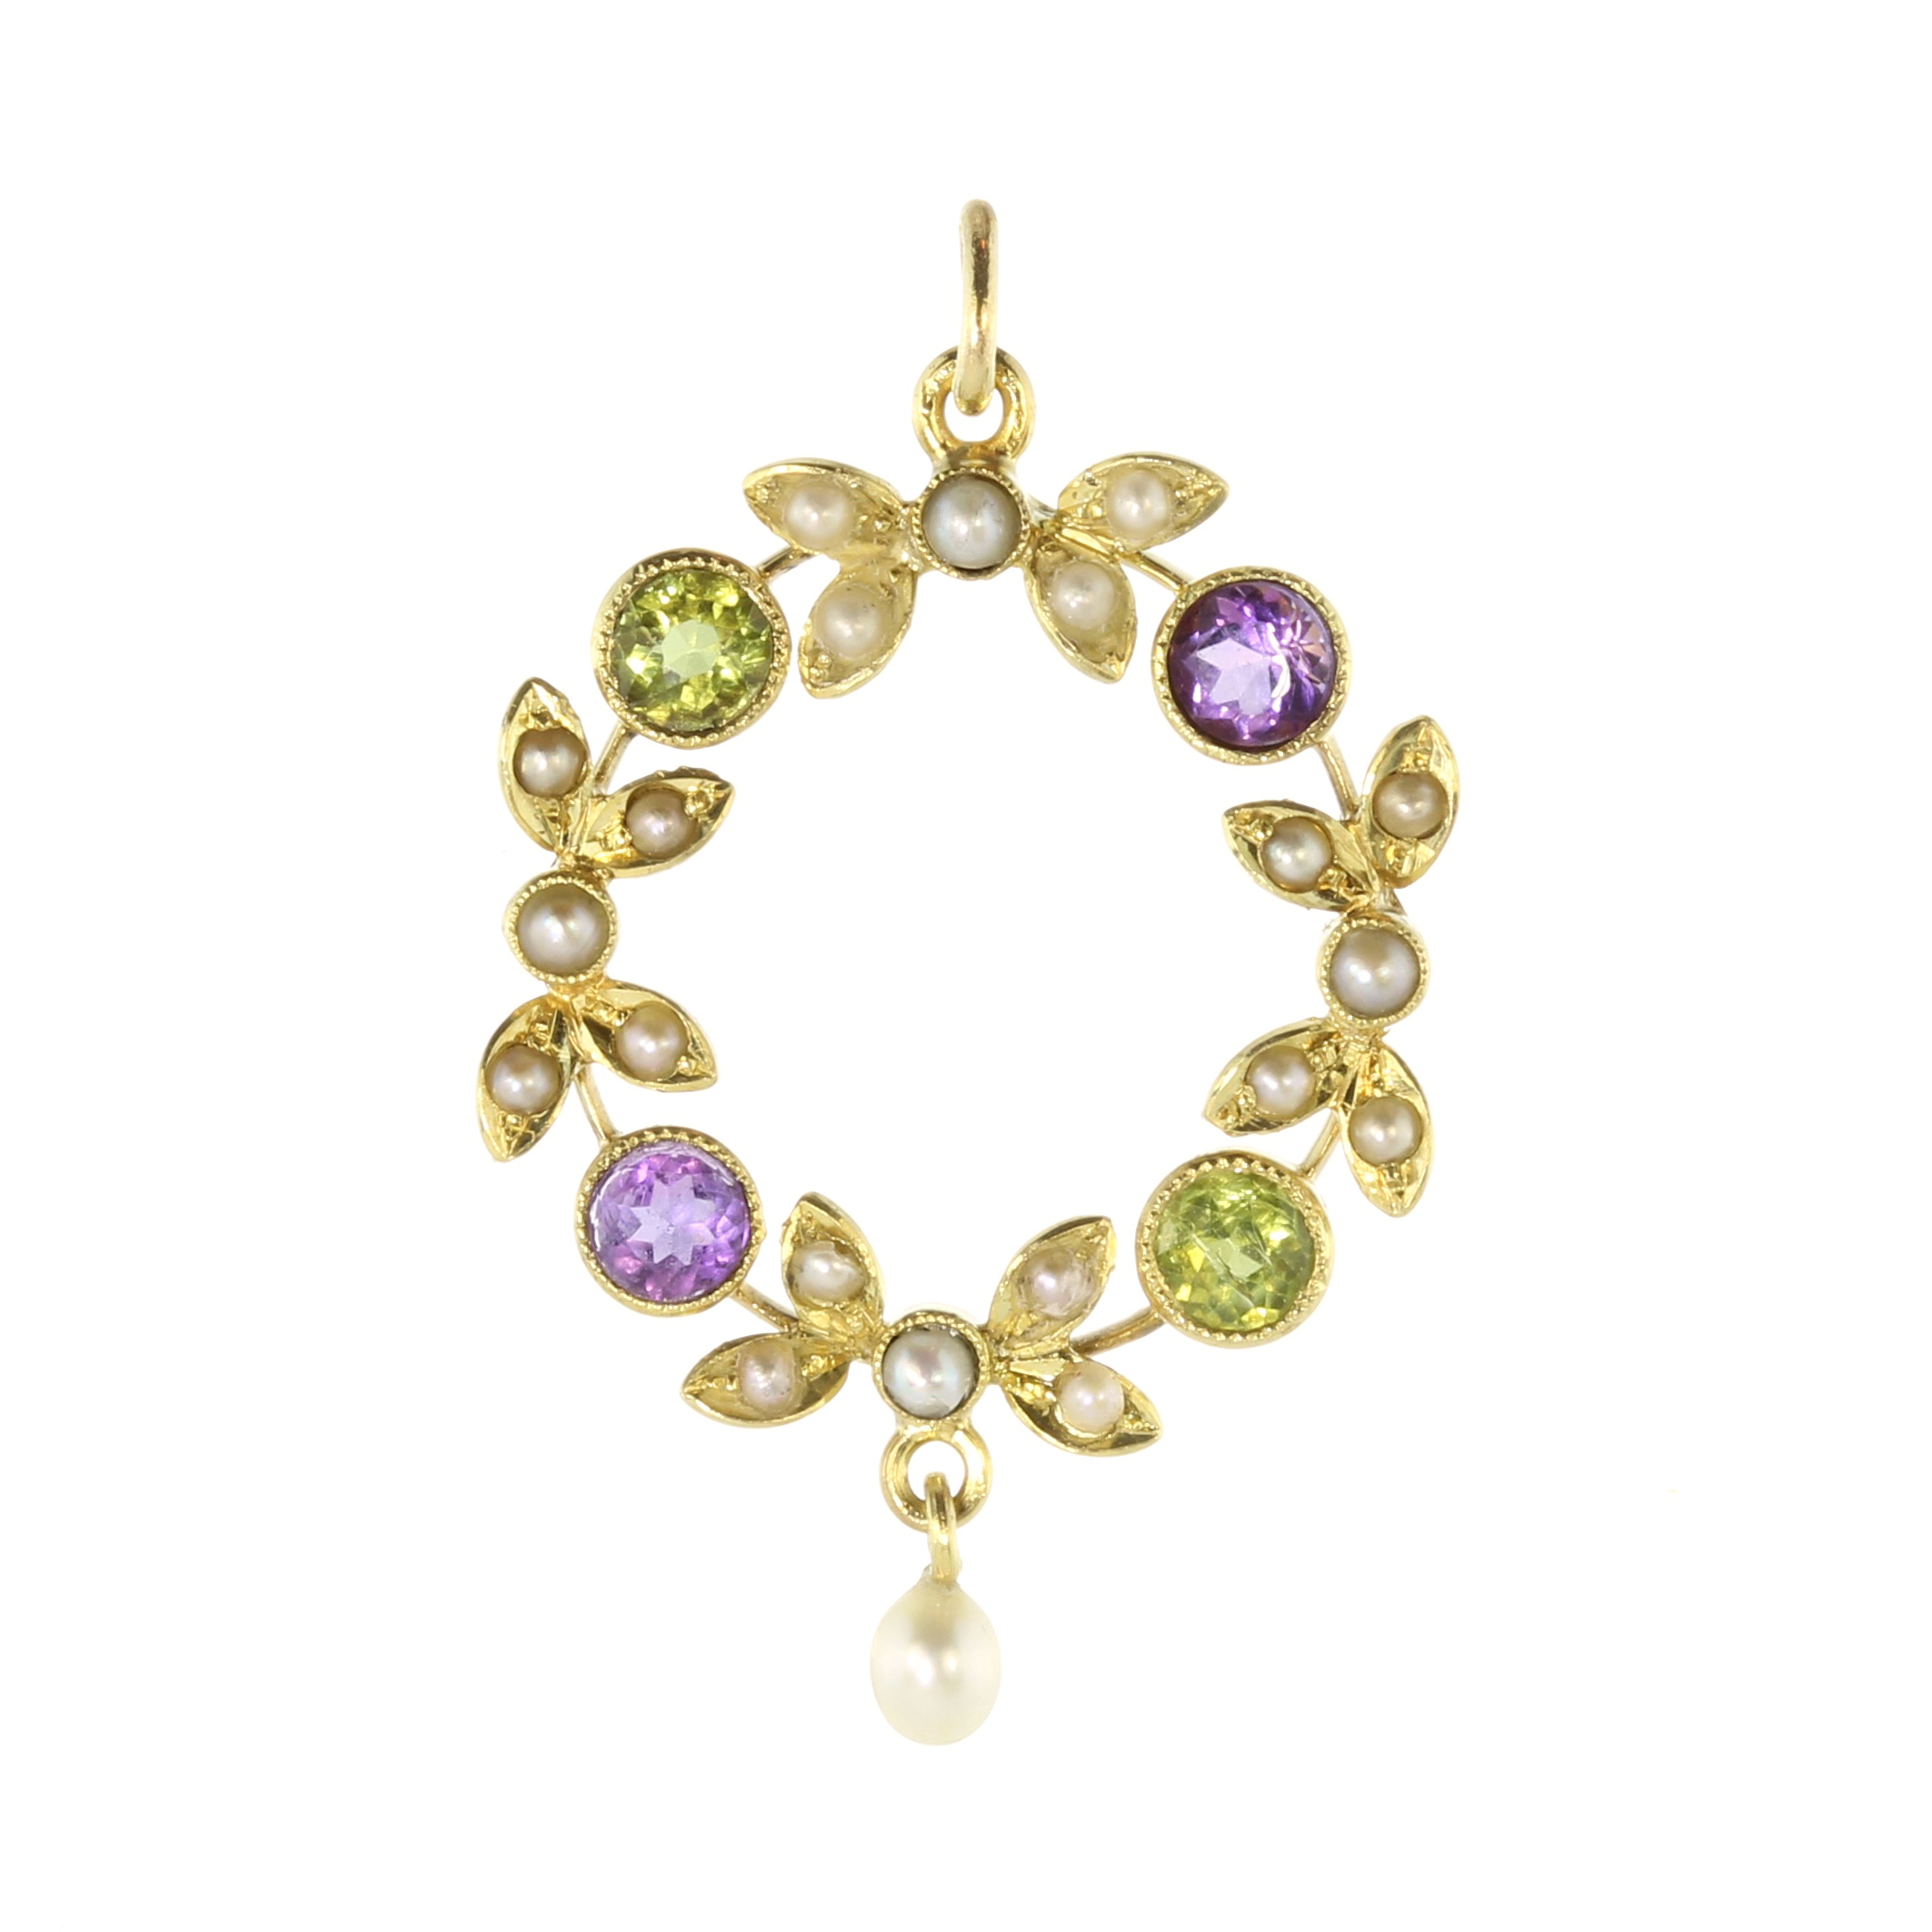 Los 8 - An early 20th Century jewelled Suffragette brooch in 15ct yellow gold (unmarked), set with round cut